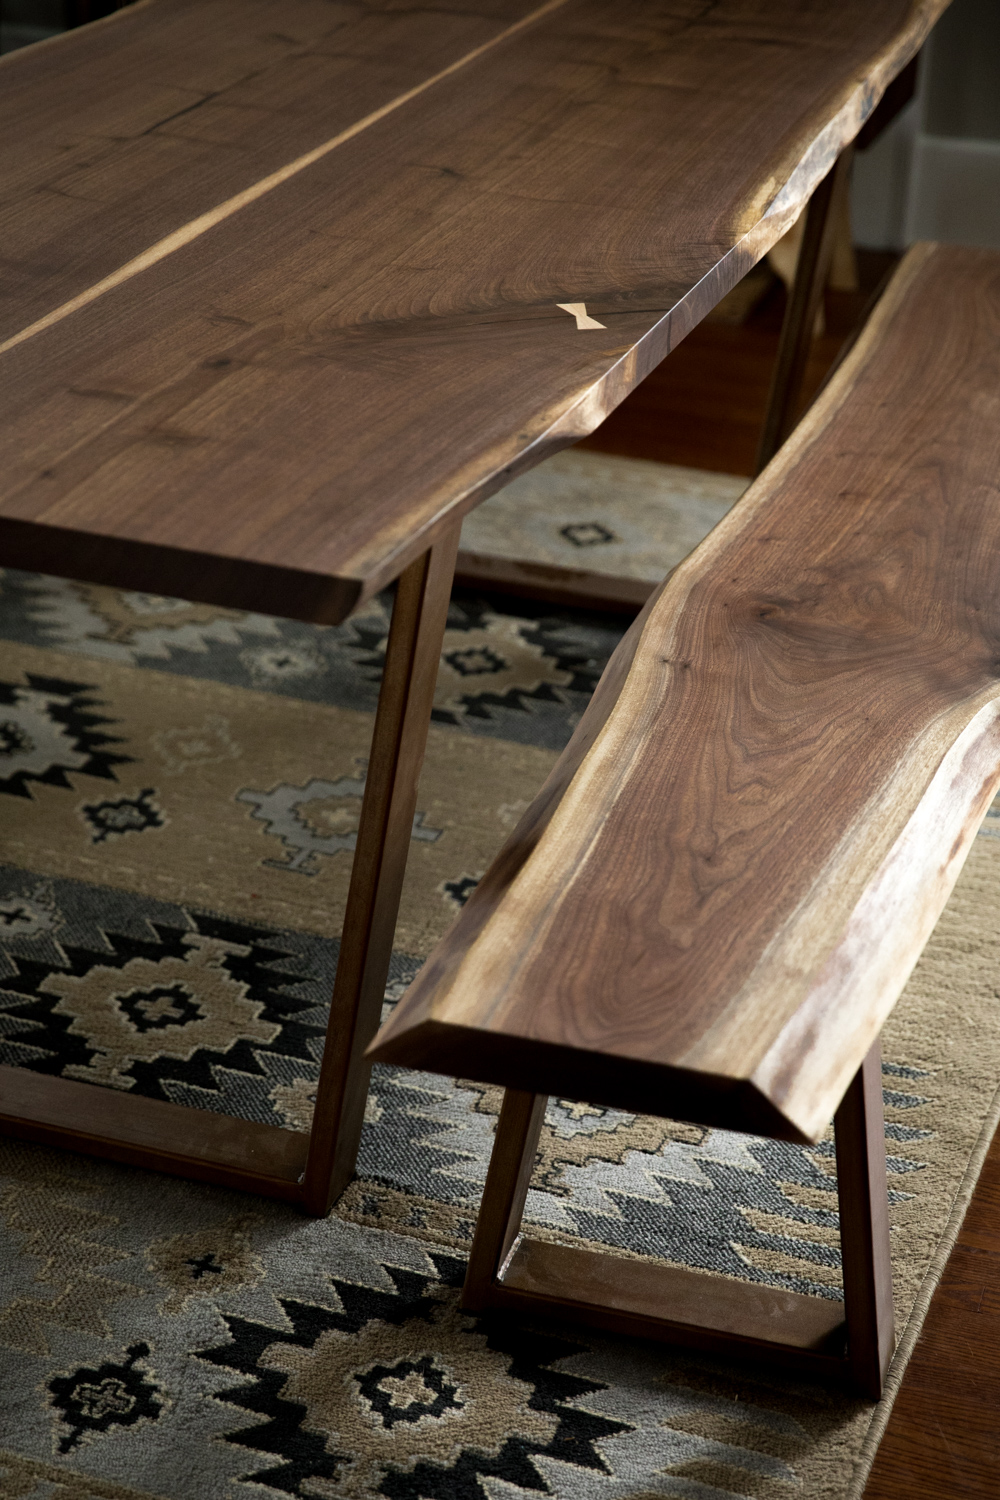 Big Tooth Co_Fort Wayne Indianapolis Woodworking _Walnut Dining Table (20 of 51).jpg